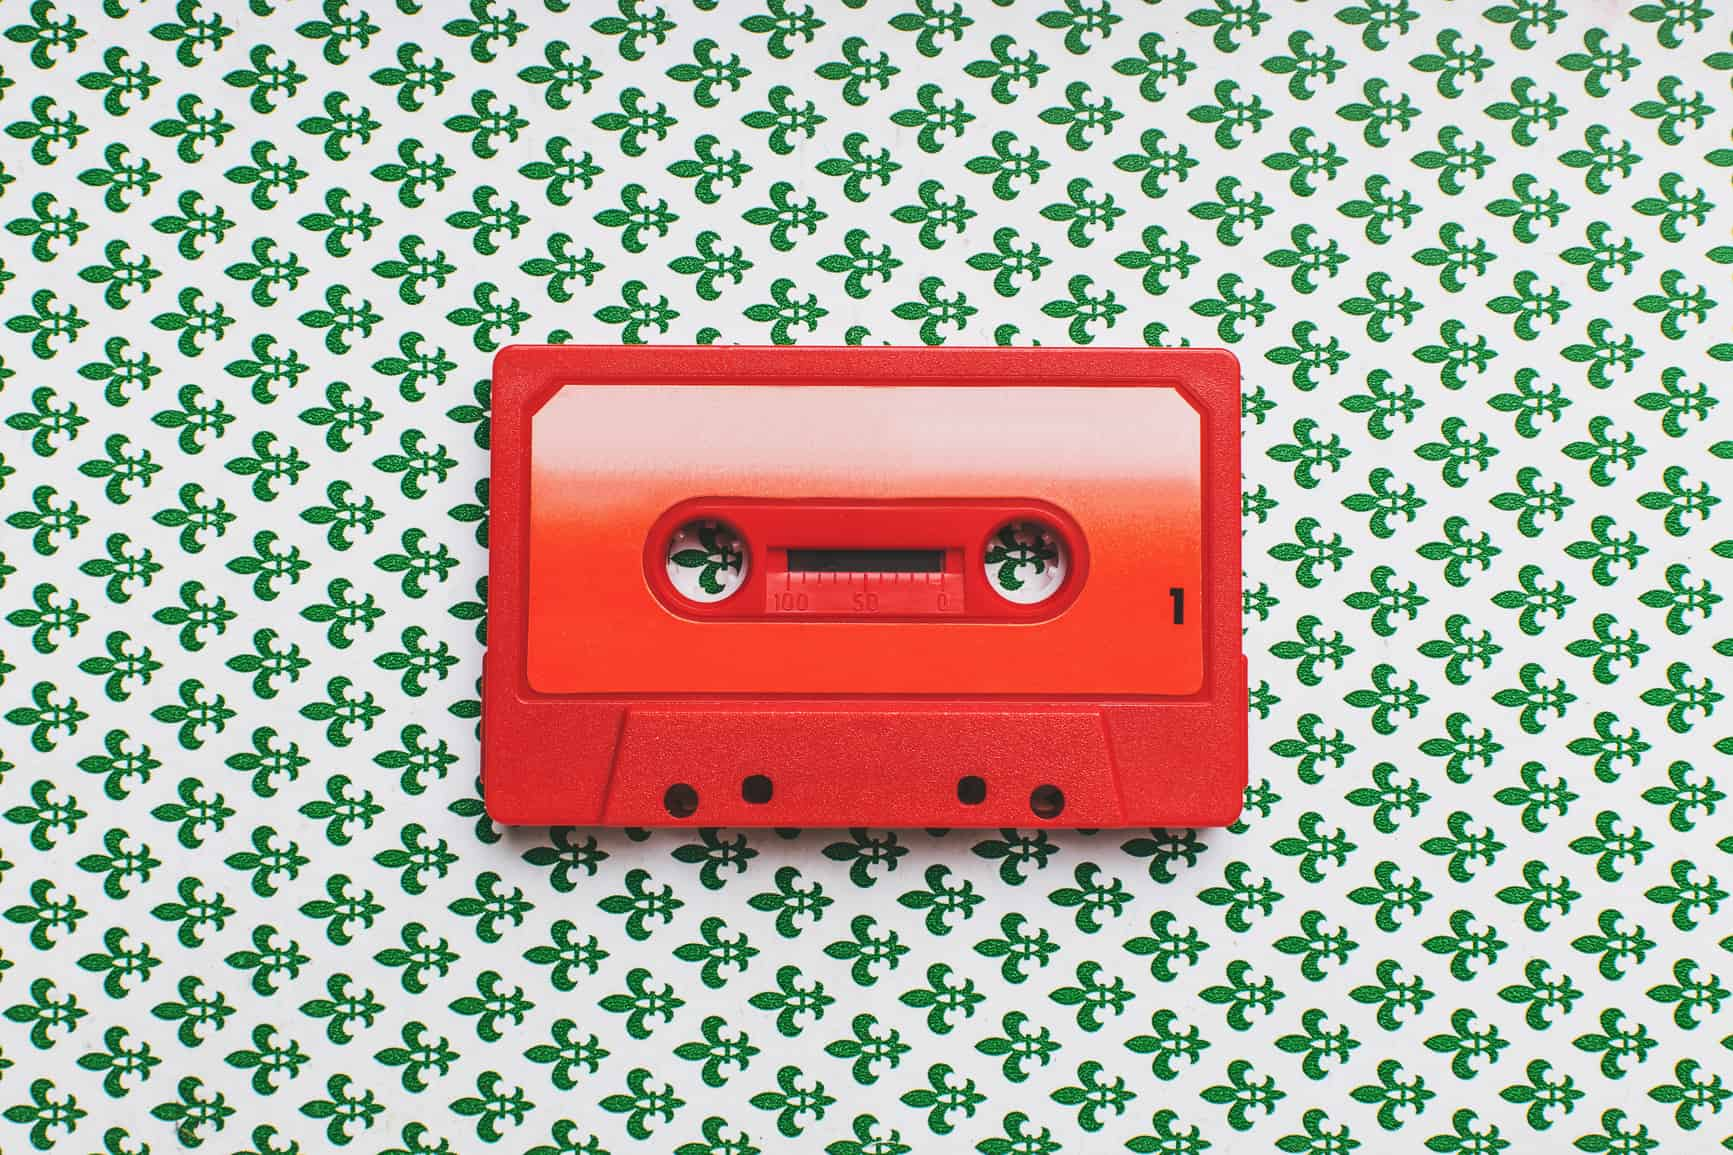 Red cassette tape on green background